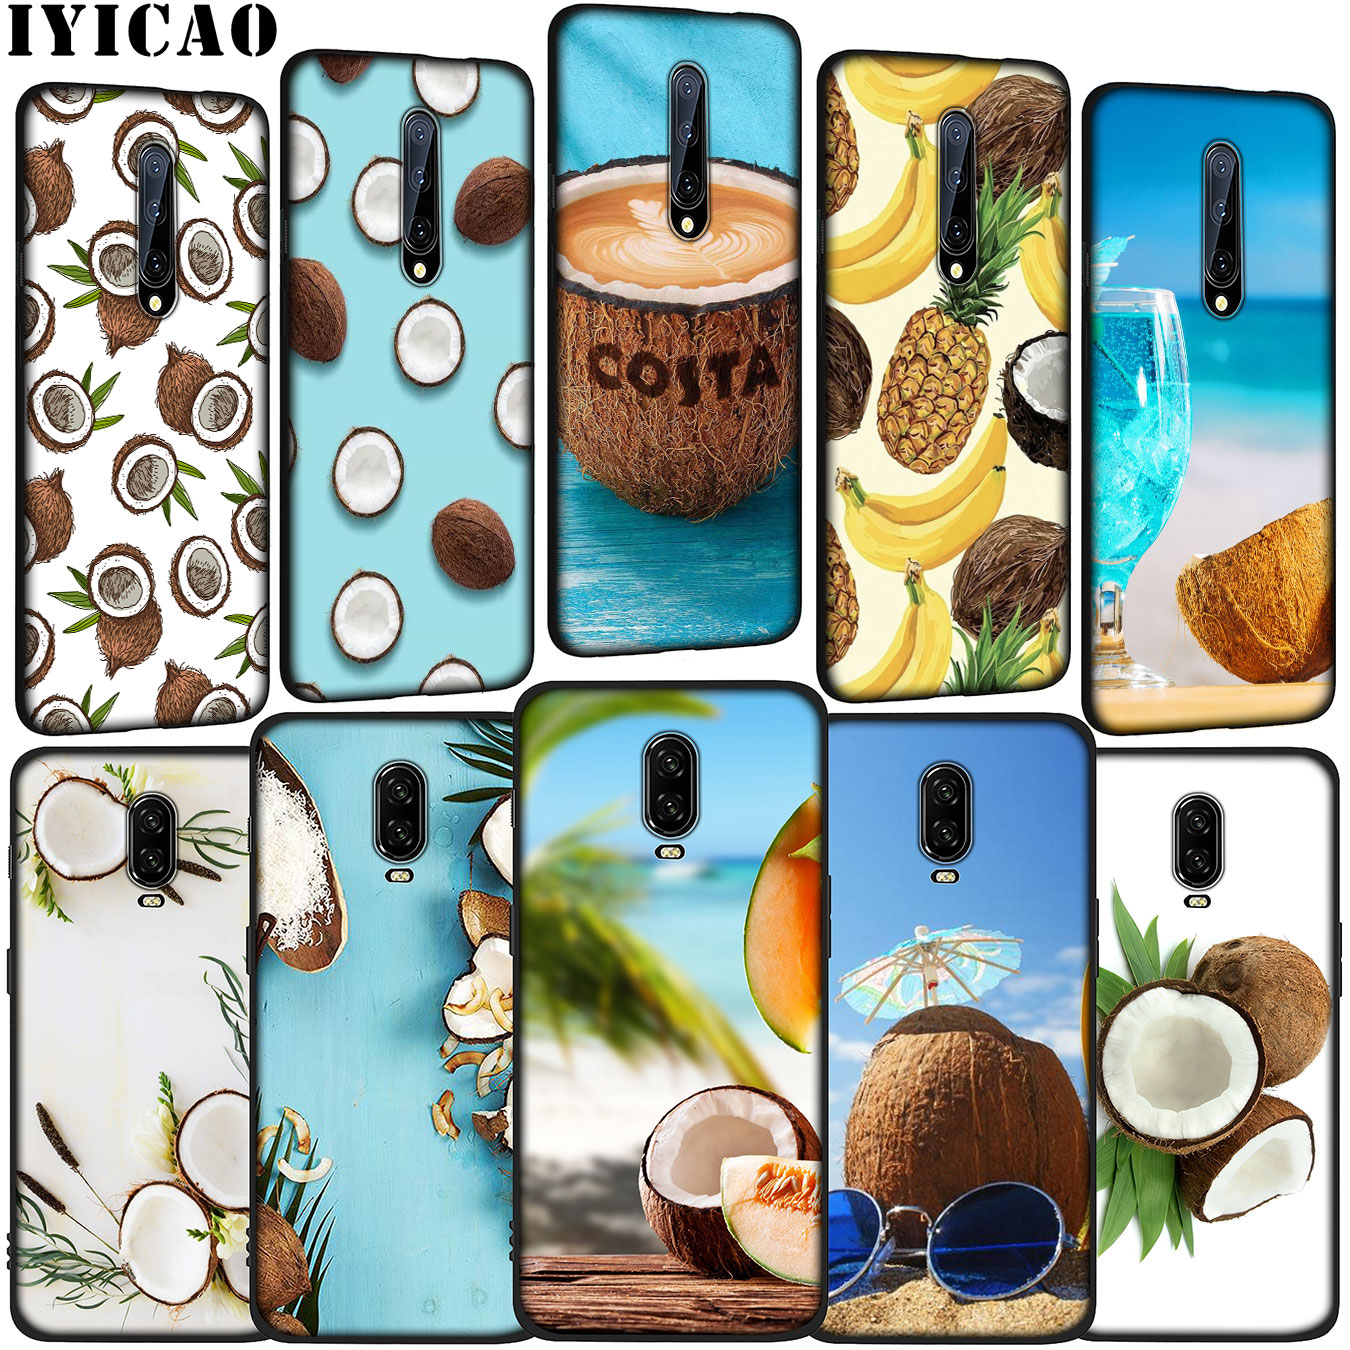 IYICAO Fruit Coconut In Blue Sky Beach Soft Silicone TPU Black <font><b>Phone</b></font> Case for OnePlus 7T 7 Pro 6T <font><b>6</b></font> 5T 5 <font><b>One</b></font> <font><b>Plus</b></font> 7Pro <font><b>Cover</b></font> image